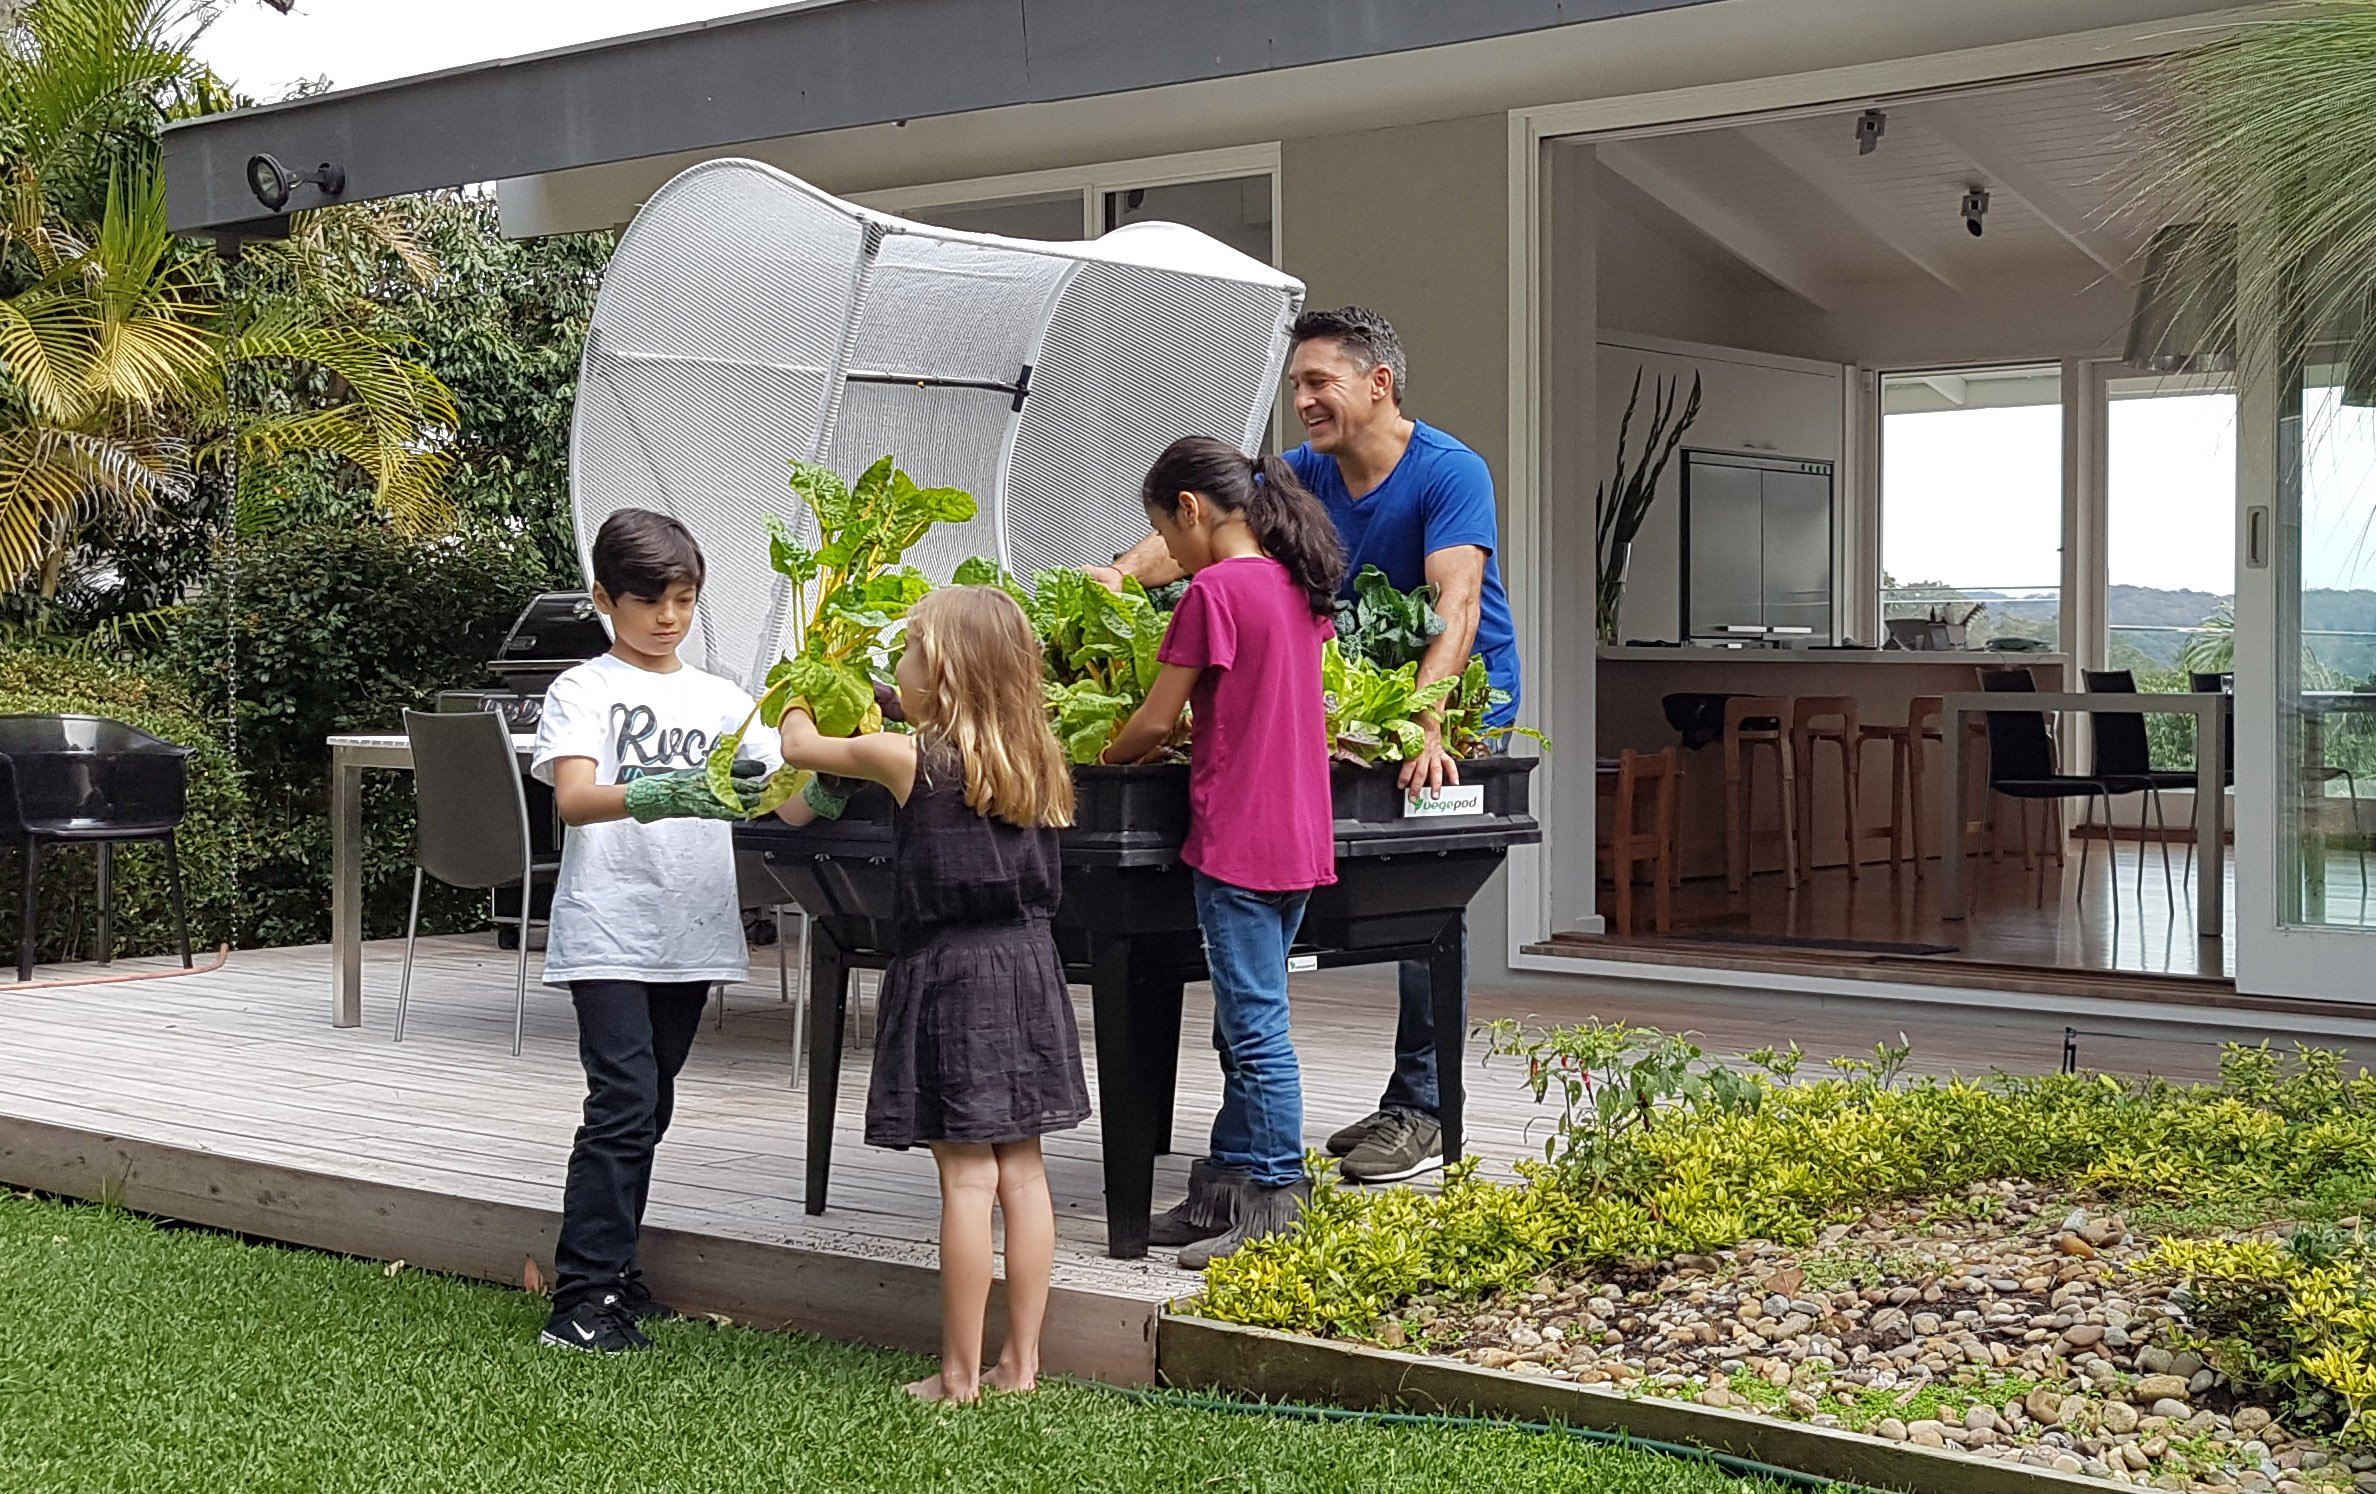 Medium Premium Raised Container Garden, Expansive 10.8 Square Foot Container with Protective Cover, Self Watering, Designed by Vegepod in Australia